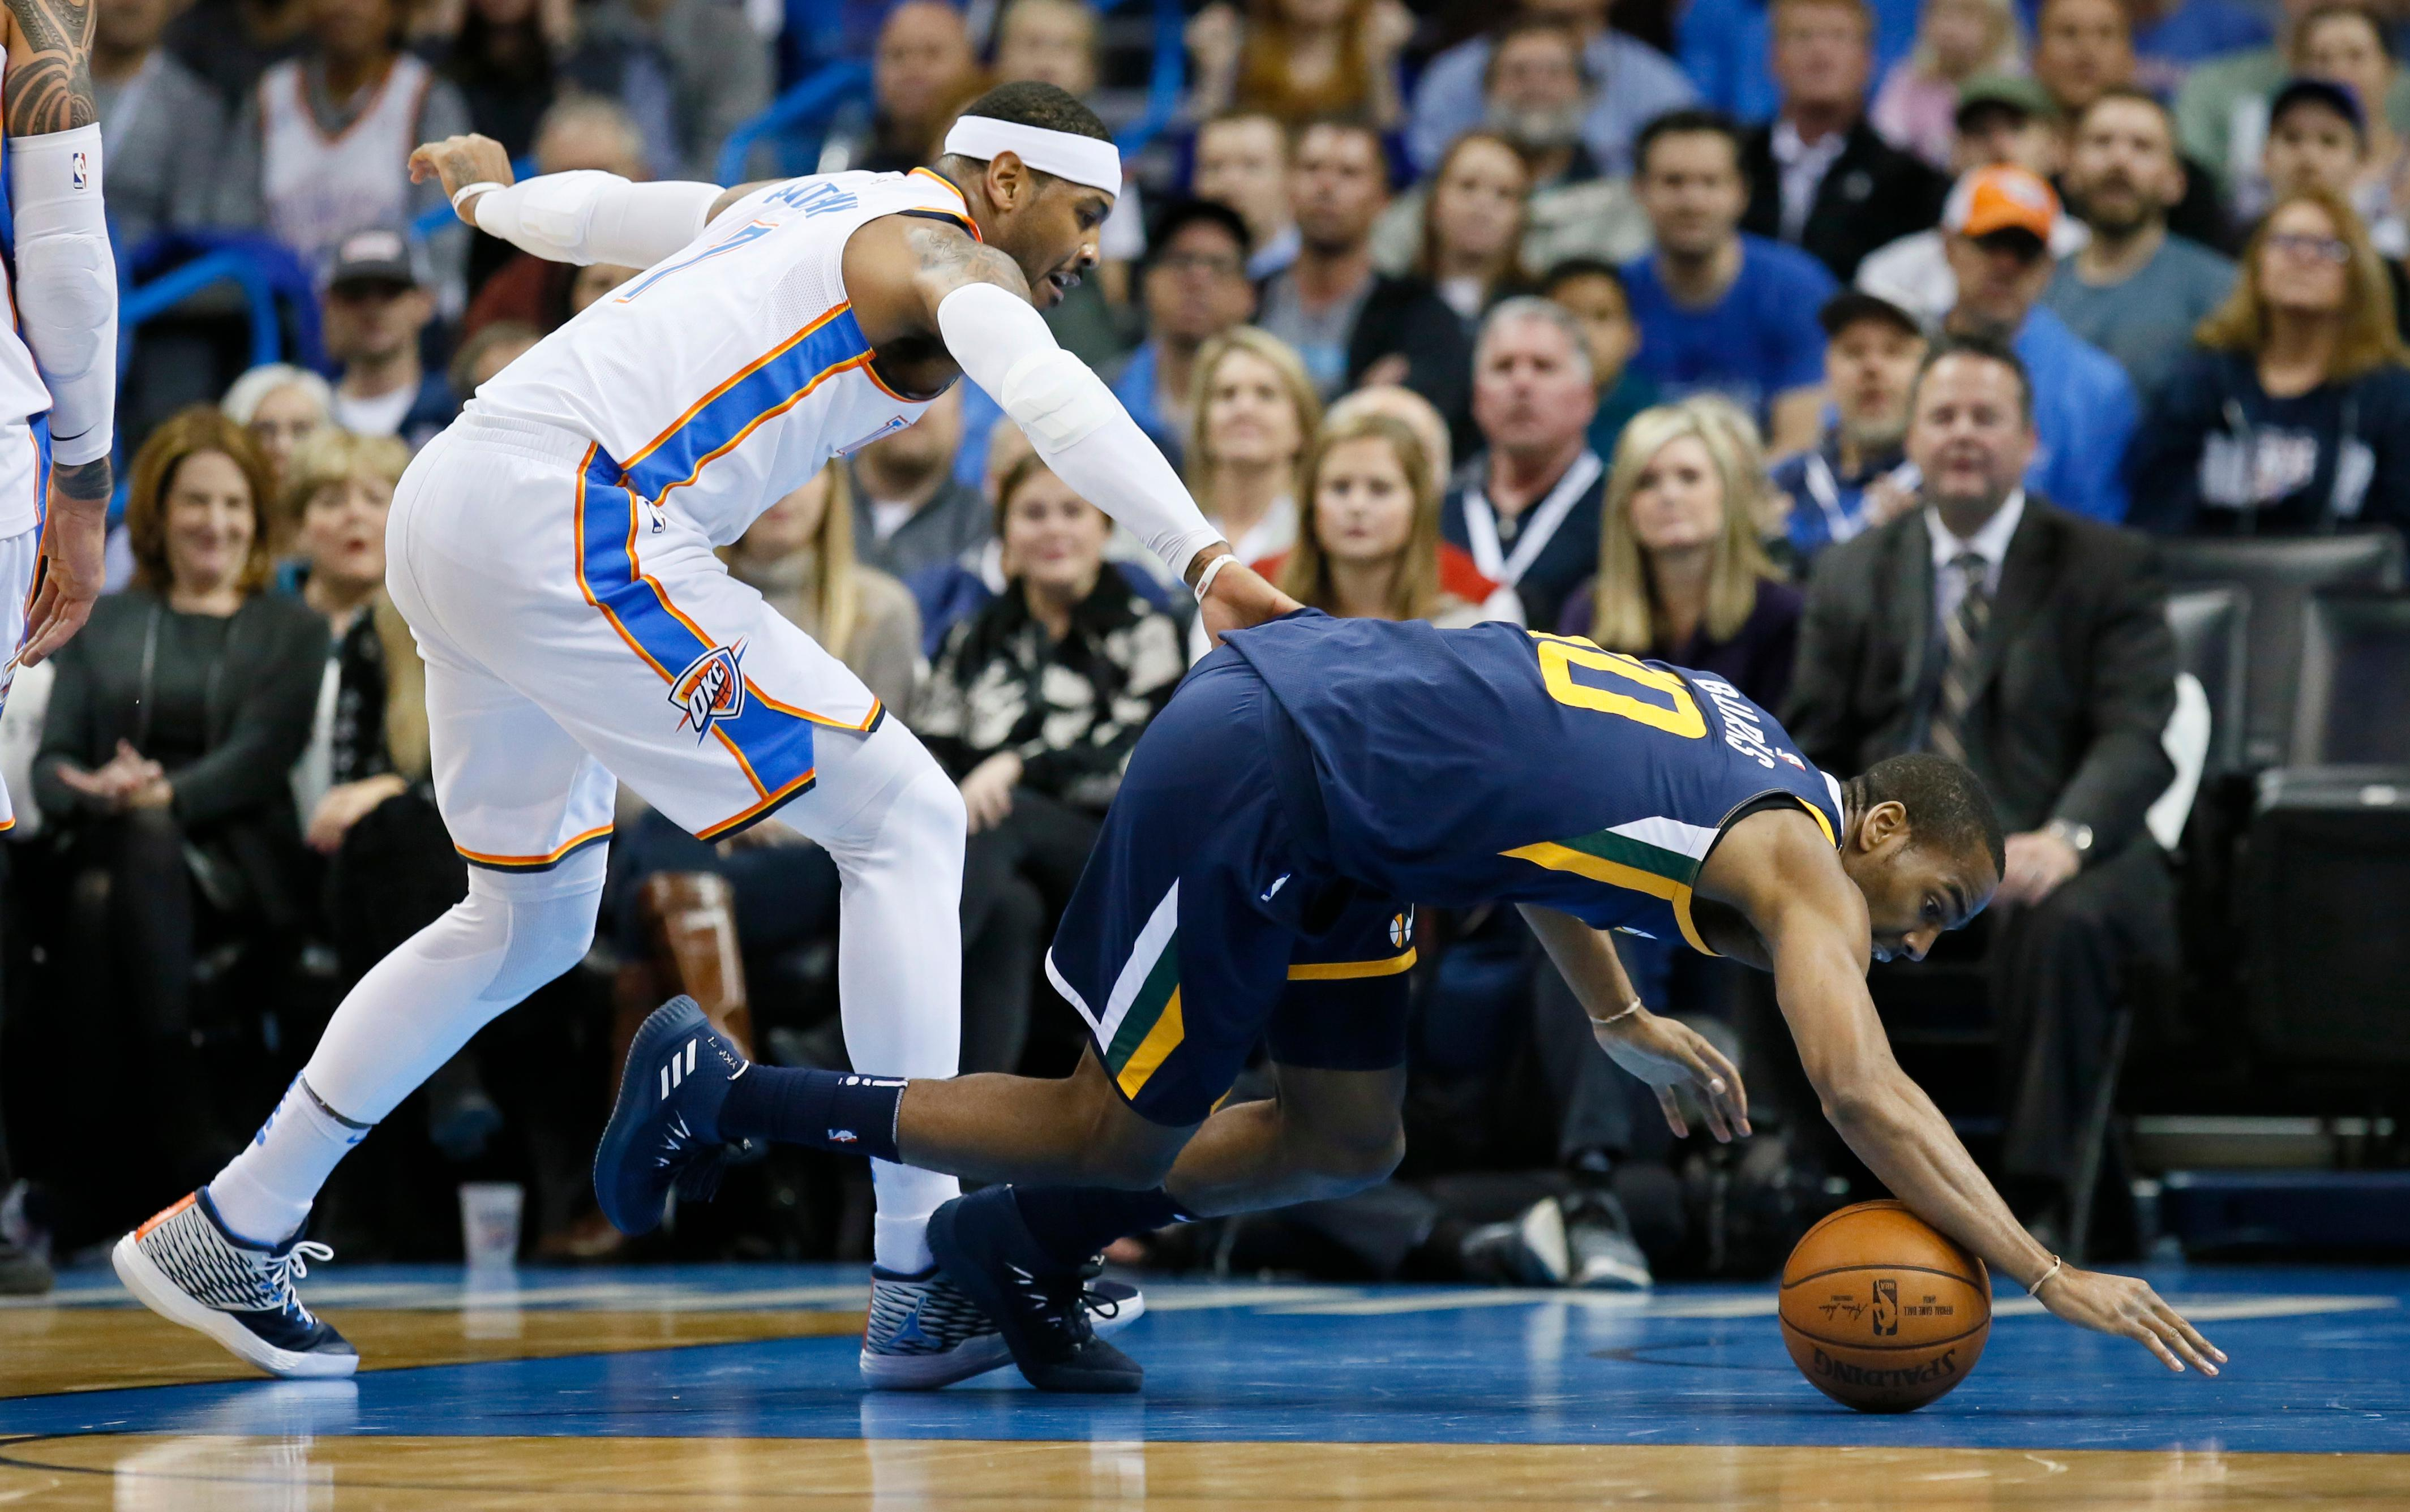 Utah Jazz guard Alec Burks (10) reaches for a loose ball in front of Oklahoma City Thunder forward Carmelo Anthony, left, in the first quarter of an NBA basketball game in Oklahoma City, Tuesday, Dec. 5, 2017. (AP Photo/Sue Ogrocki)